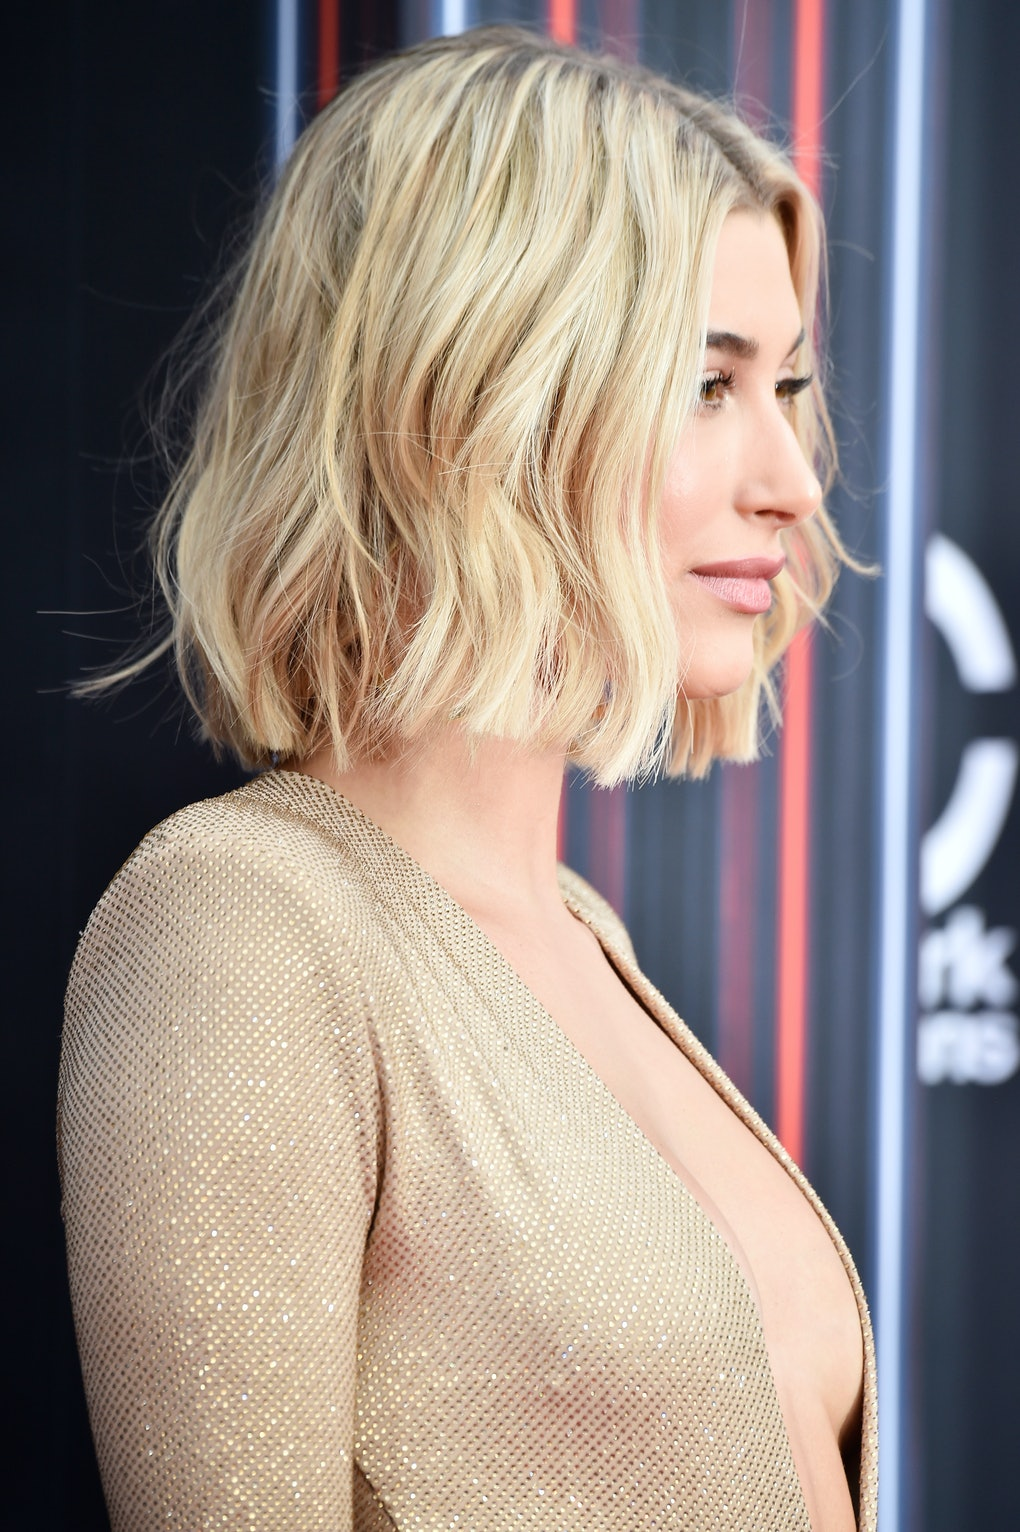 These 2019 Haircut Trends Are About To Make This Year Even Bolder